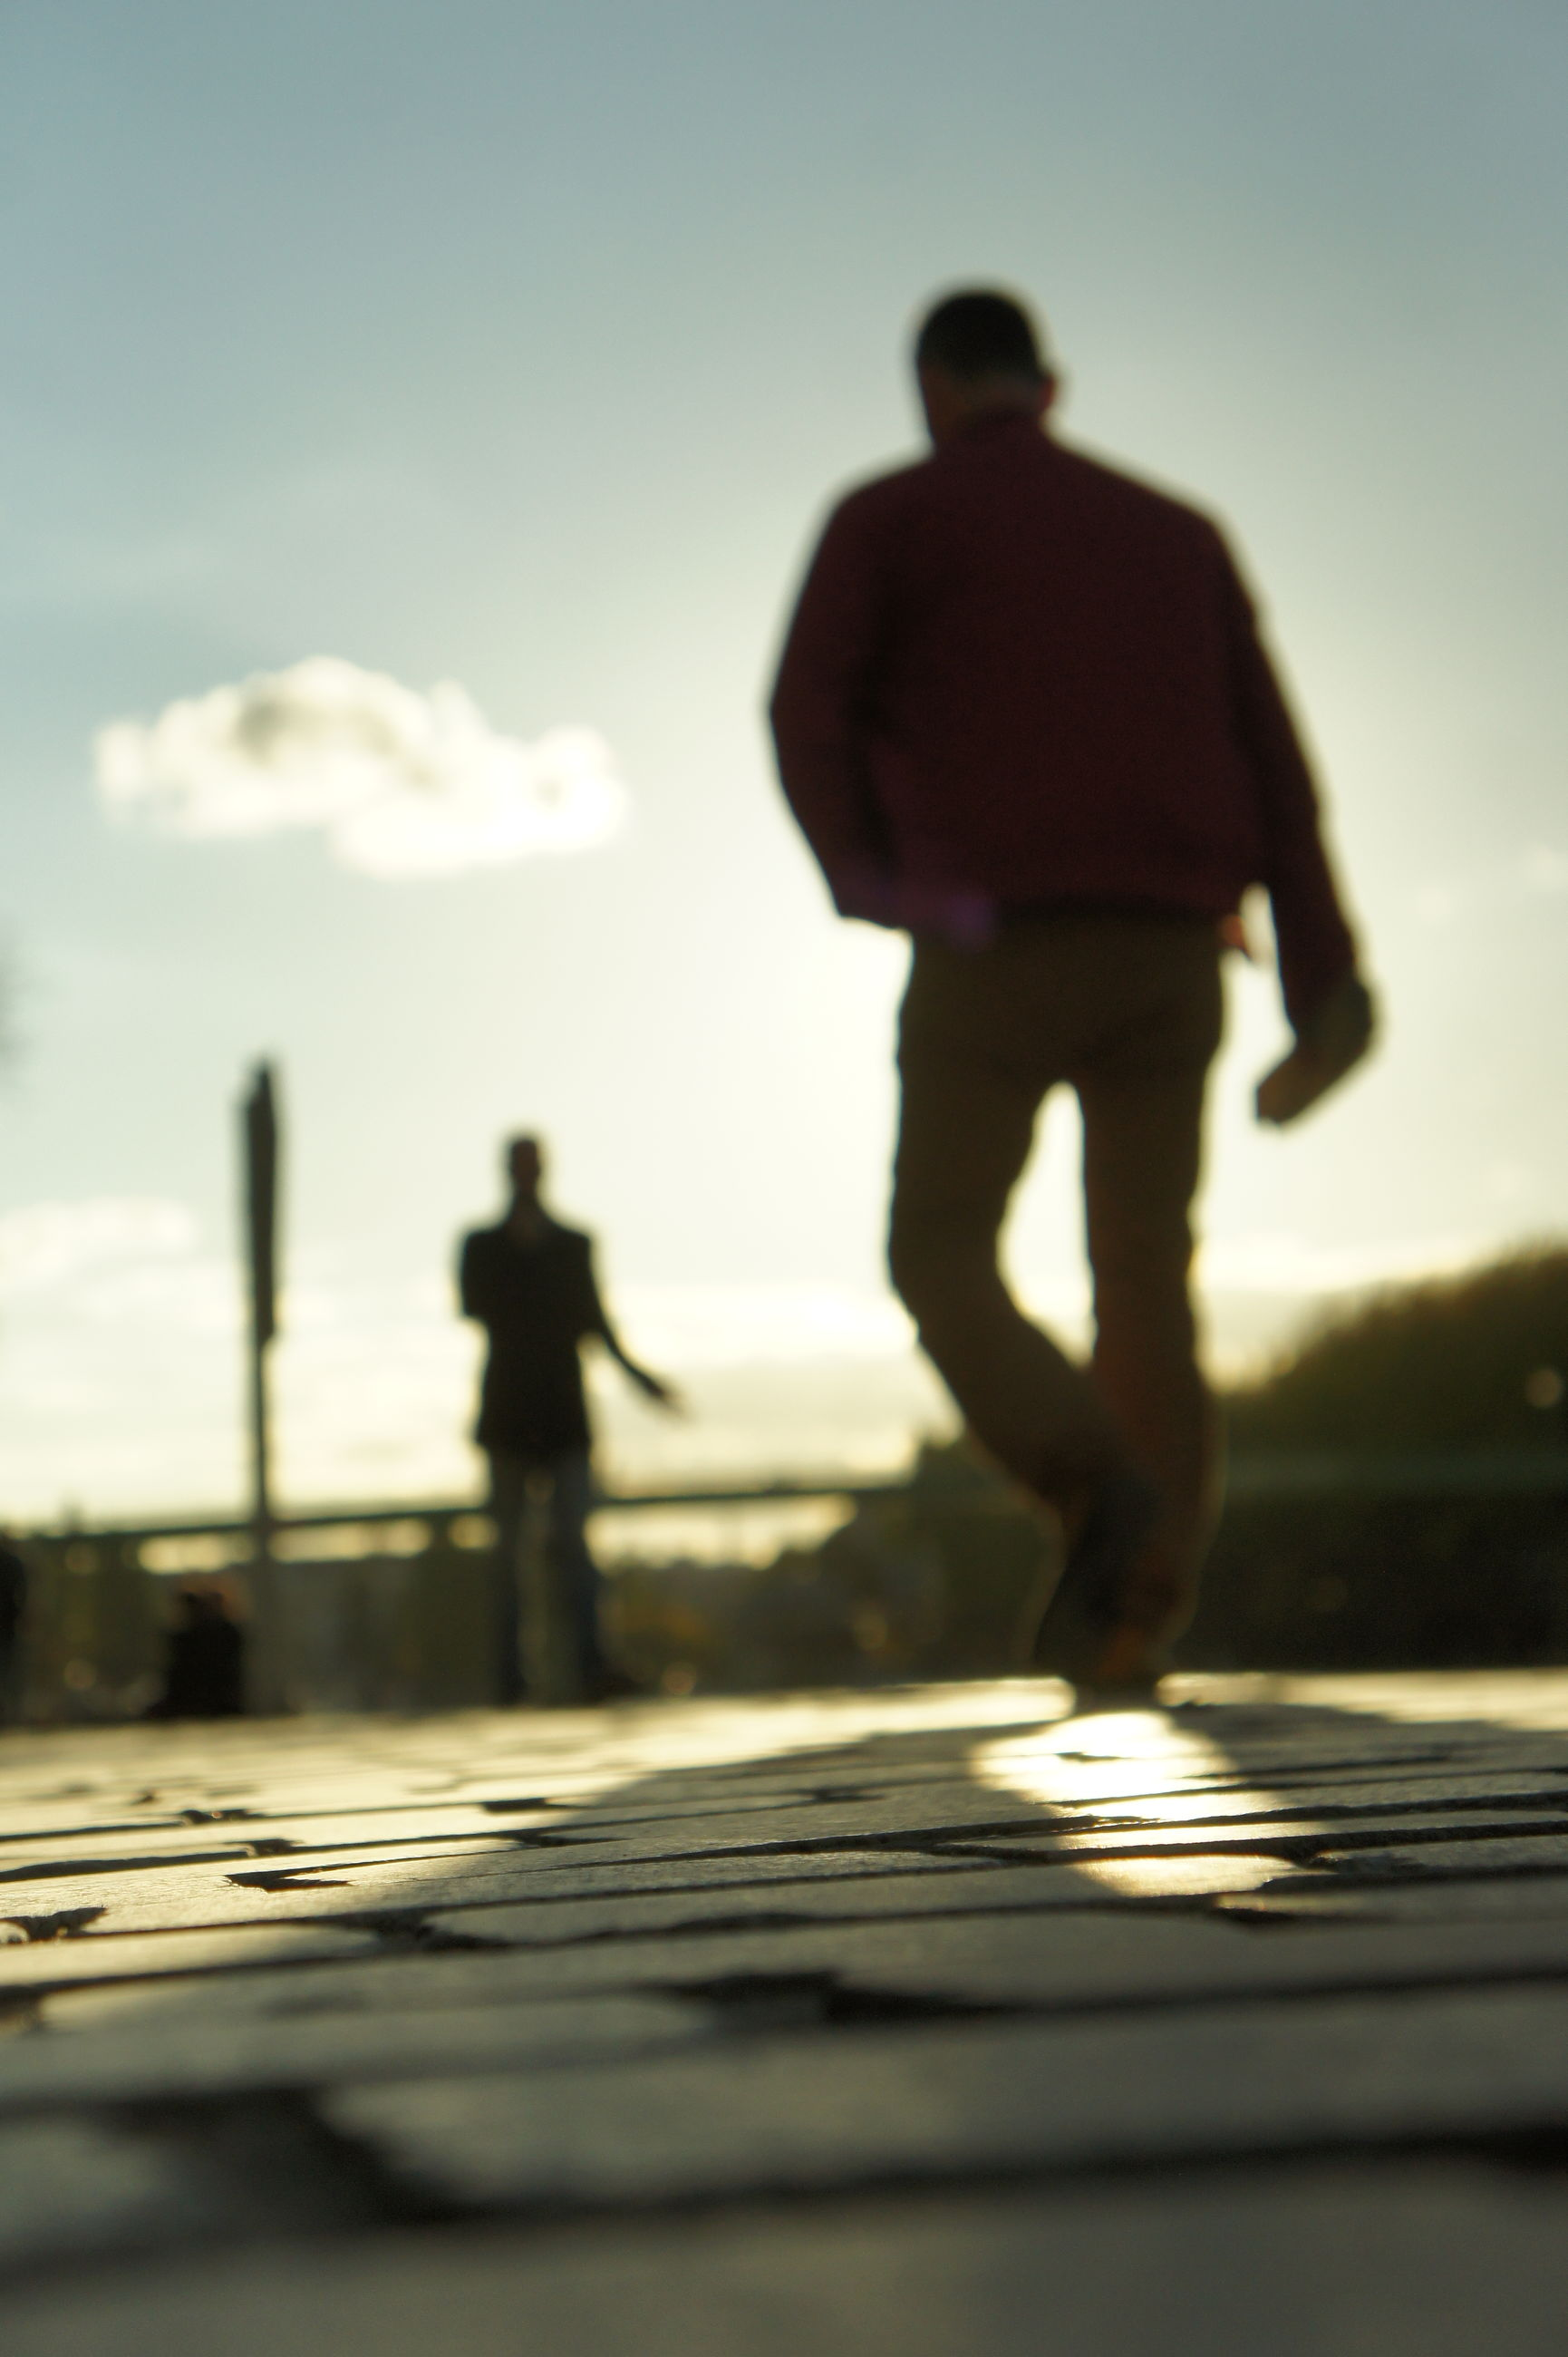 silhouette, focus on foreground, men, lifestyles, leisure activity, photography themes, selective focus, photographing, built structure, sky, holding, building exterior, architecture, outdoors, technology, unrecognizable person, camera - photographic equipment